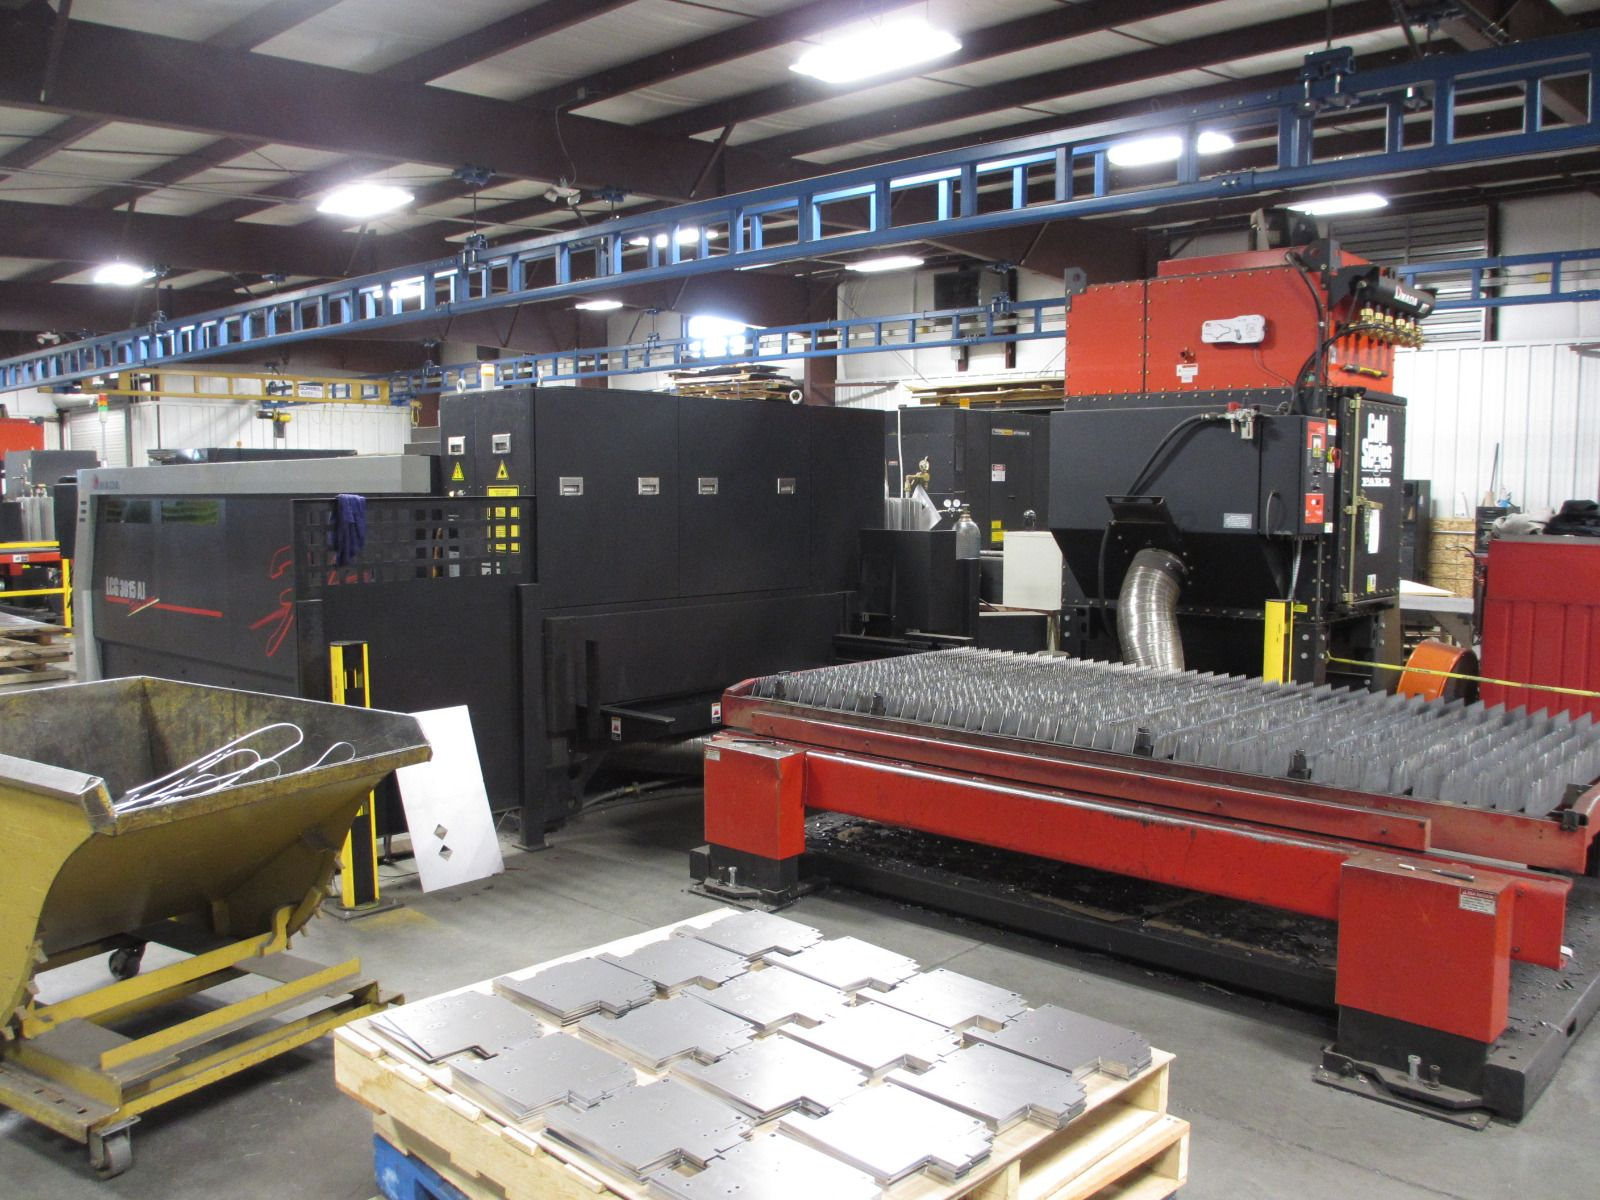 "Amada LCG 3015AJ, 4,000 Watt Fiber Laser, 60"" x 120"" Table, AMNC3 large screen PC control, 12K Power on Hours, Year New: 2015"